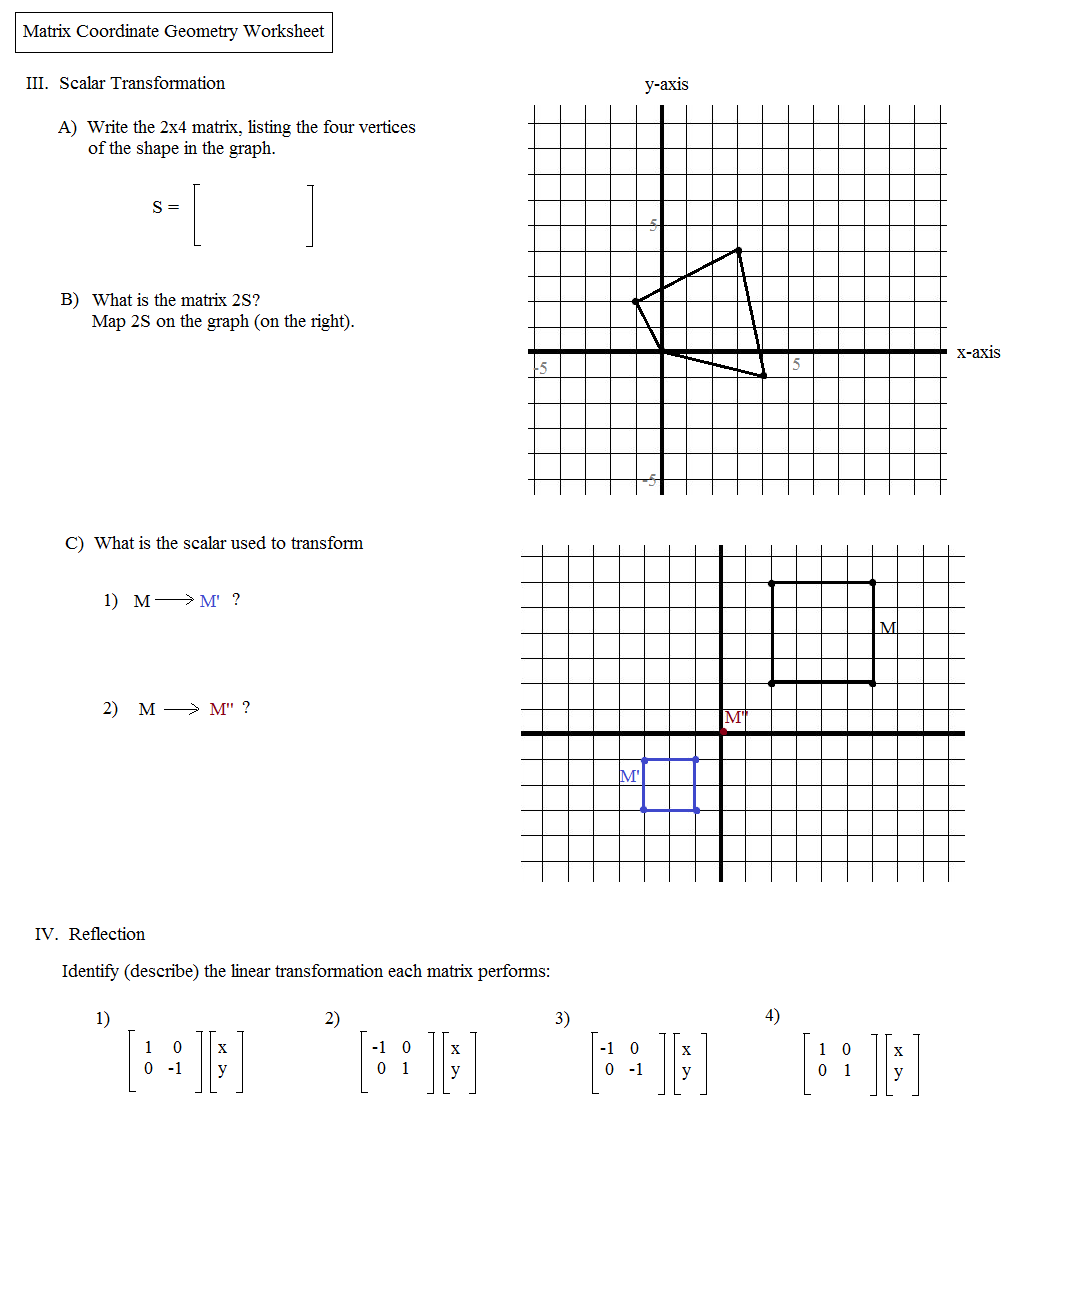 Worksheet Transformations Practice Worksheet sequence of transformations worksheet syndeomedia geometry worksheets math plane matrix iii coordinate geometry